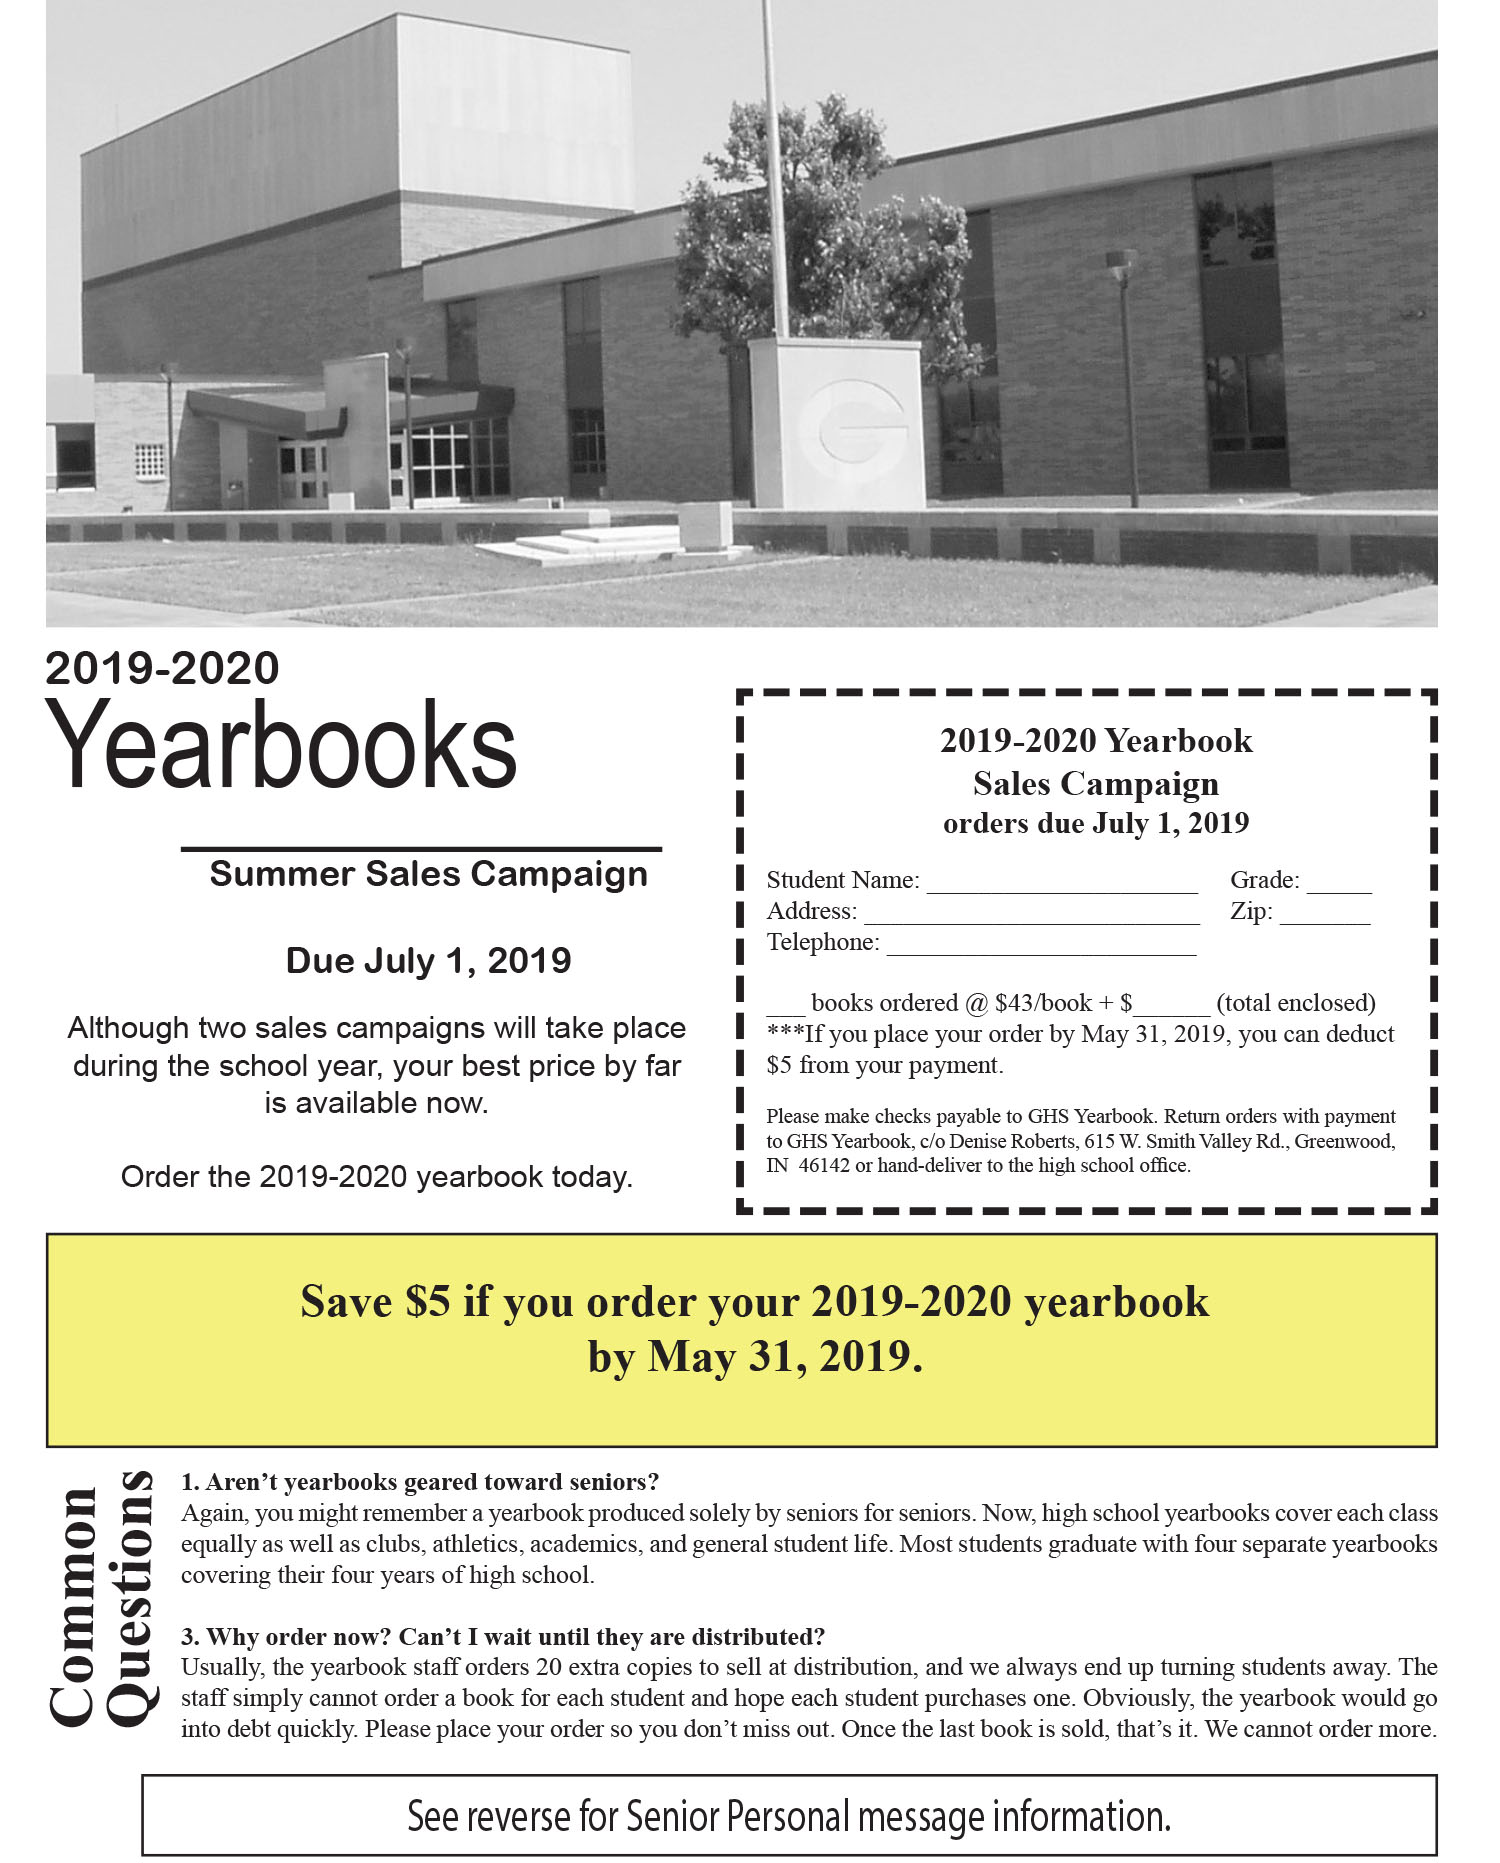 Best After Christmas Sales 2020 Early Bird 2019 2020 Yearbook Sales